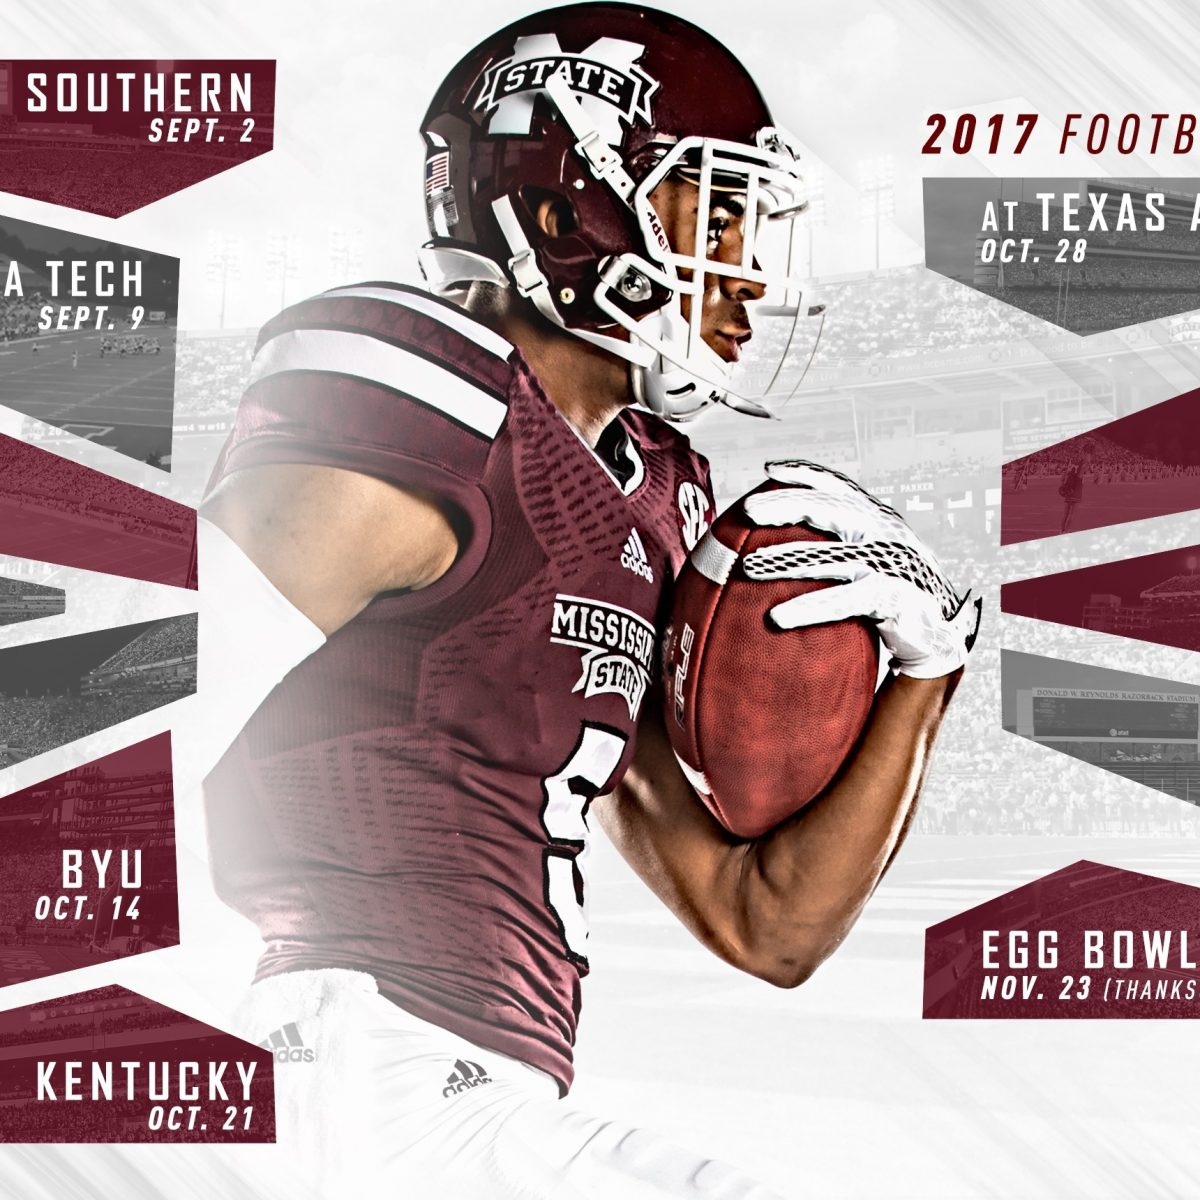 2017 Msu Football Schedule Unveiled, Egg Bowl To Return To in Mississippi State Football Schedule